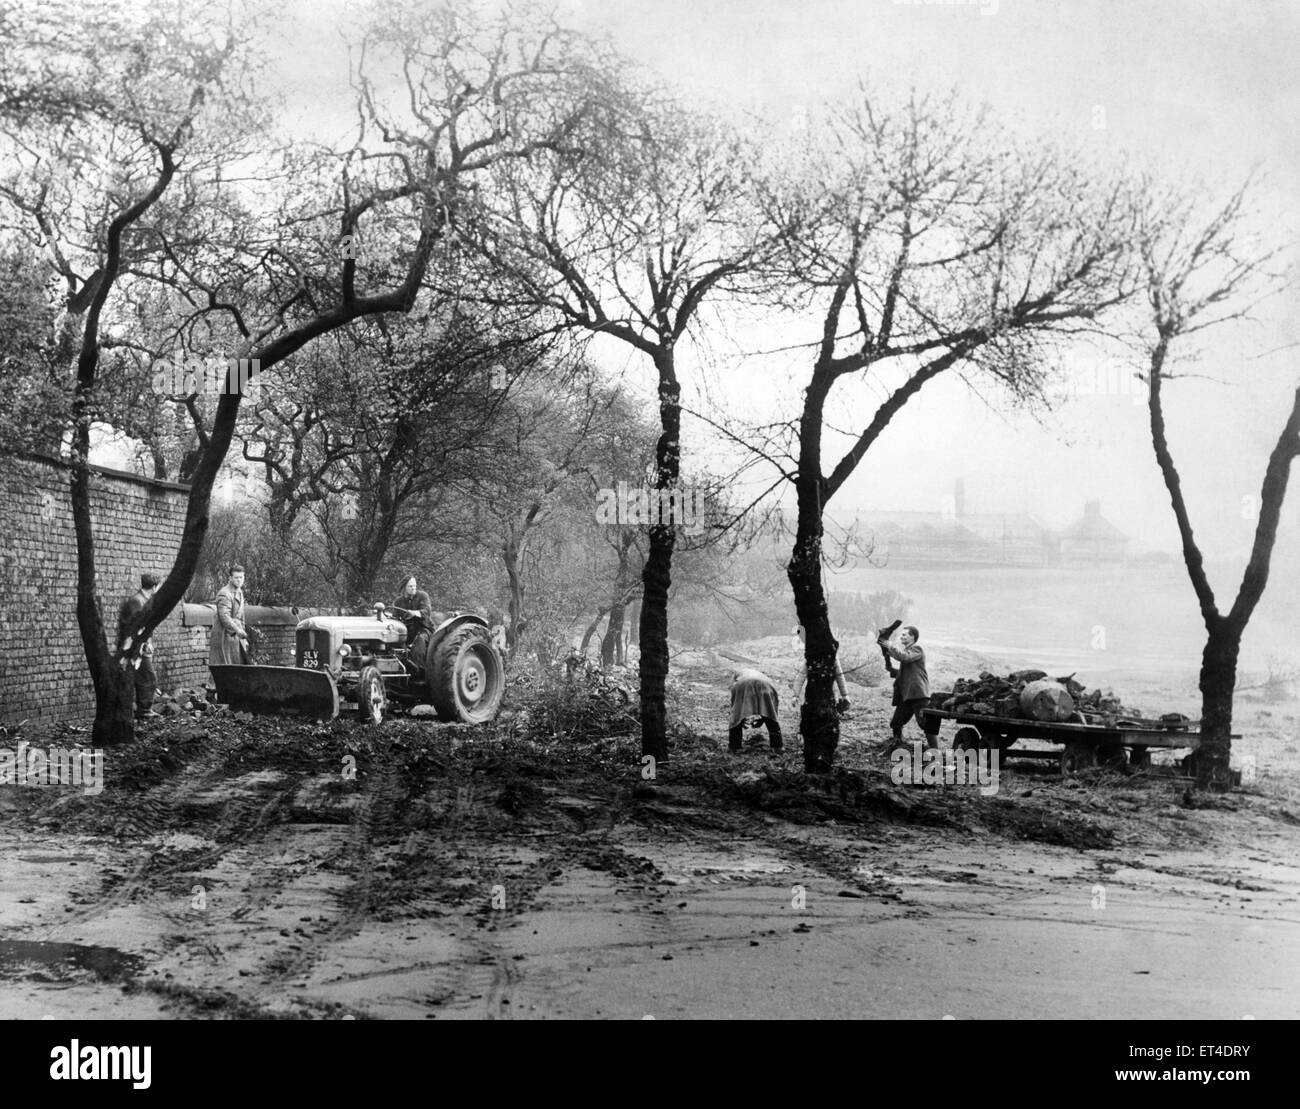 Cleanup at Wavertree Park, Liverpool, Merseyside. 28th April 1959. - Stock Image